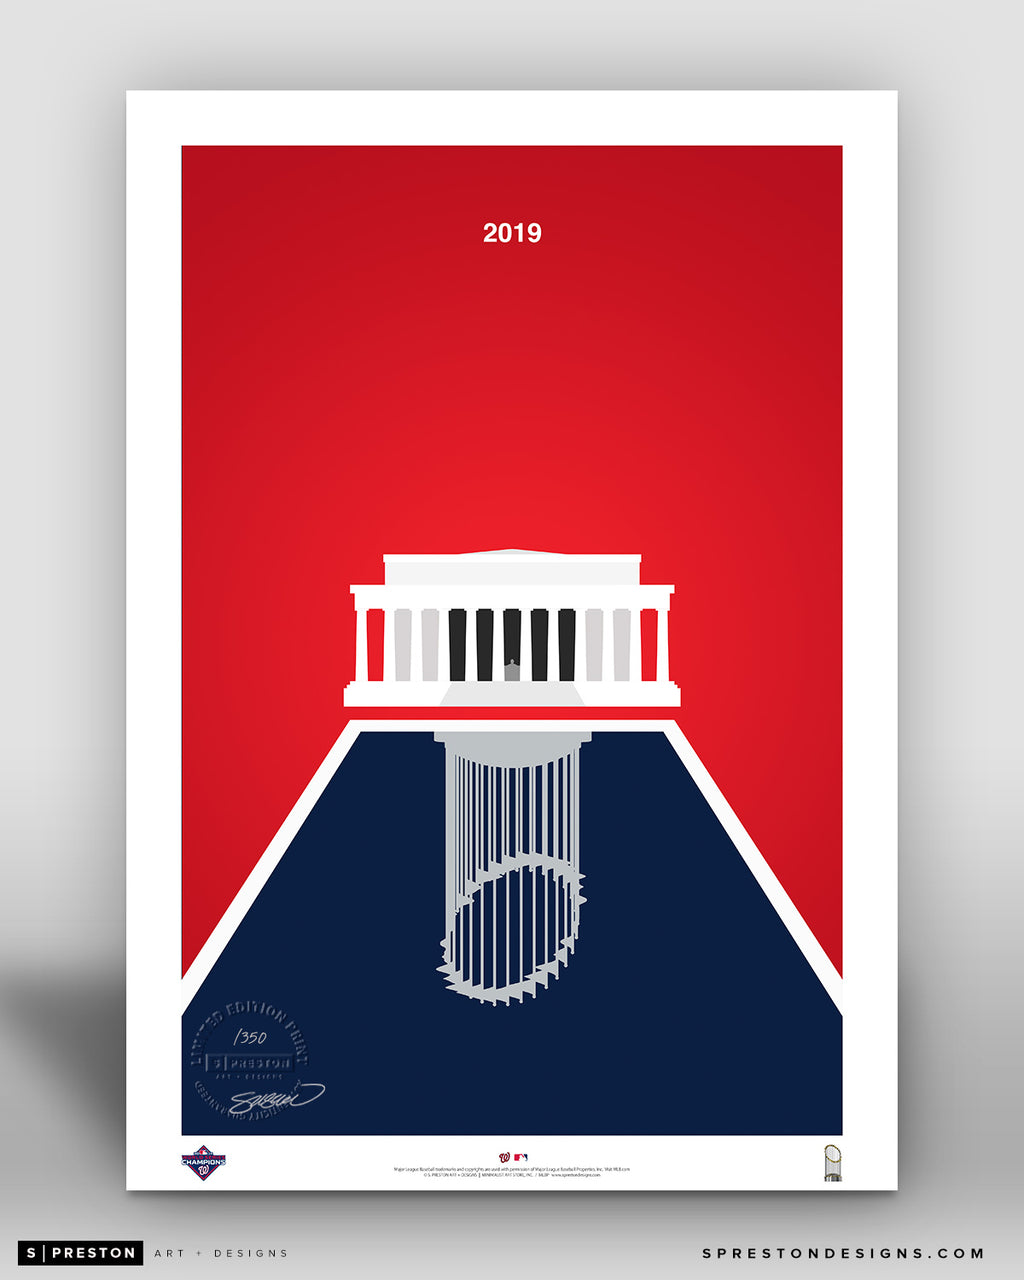 Minimalist World Series 2019